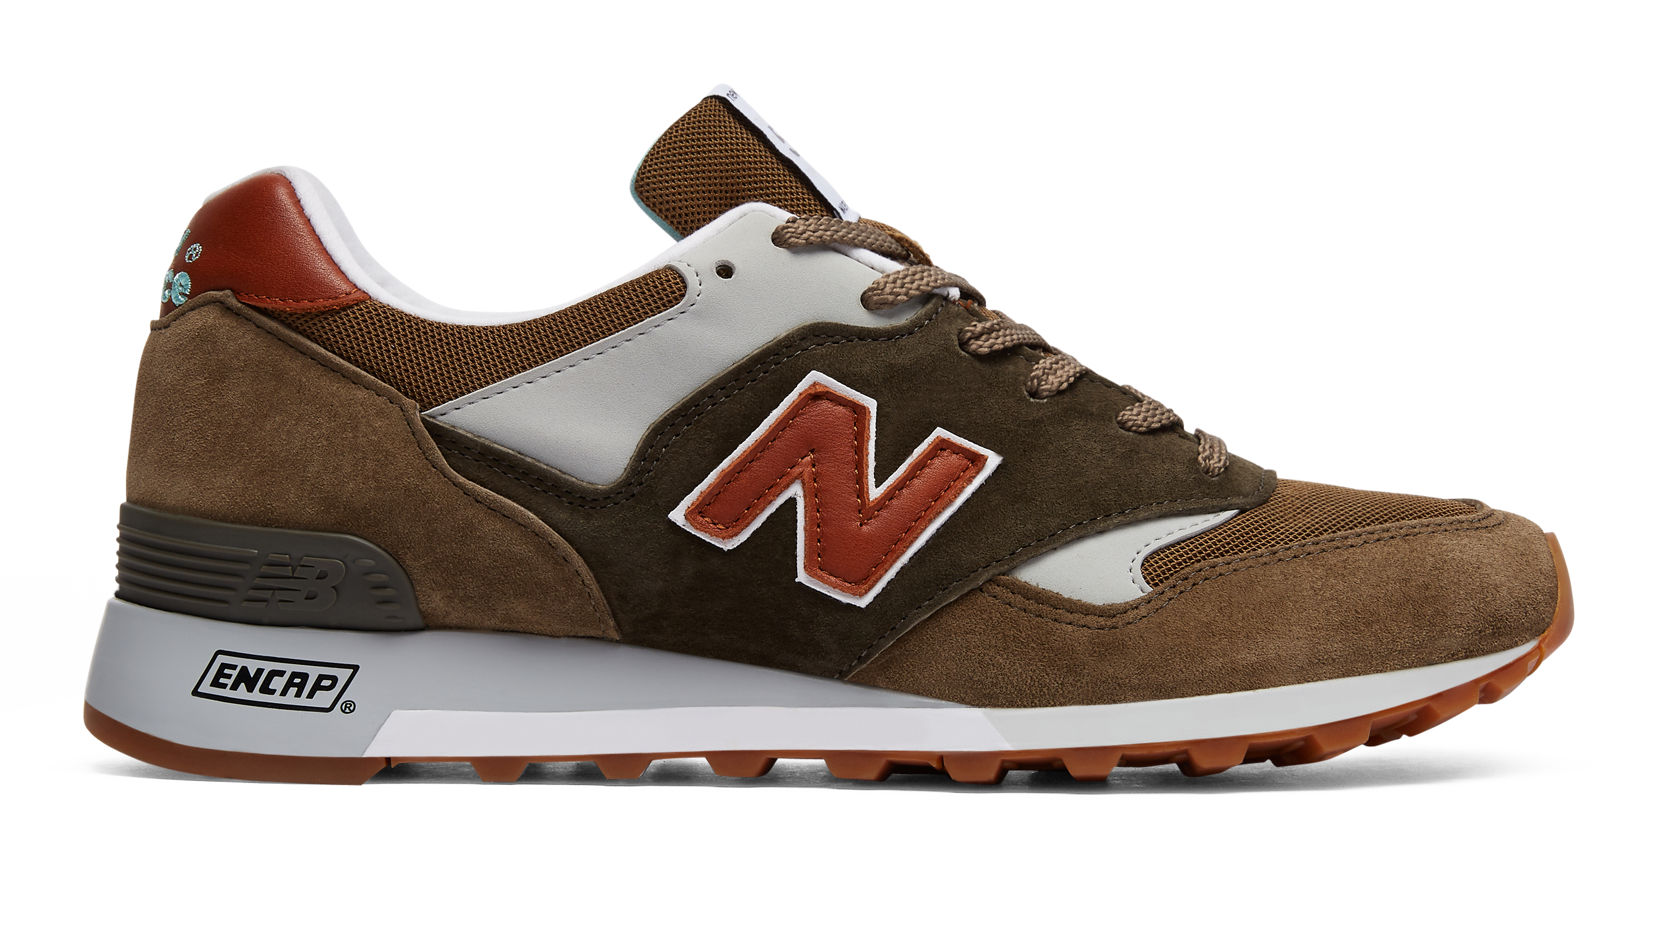 577 Made in UK Luxe New Balance